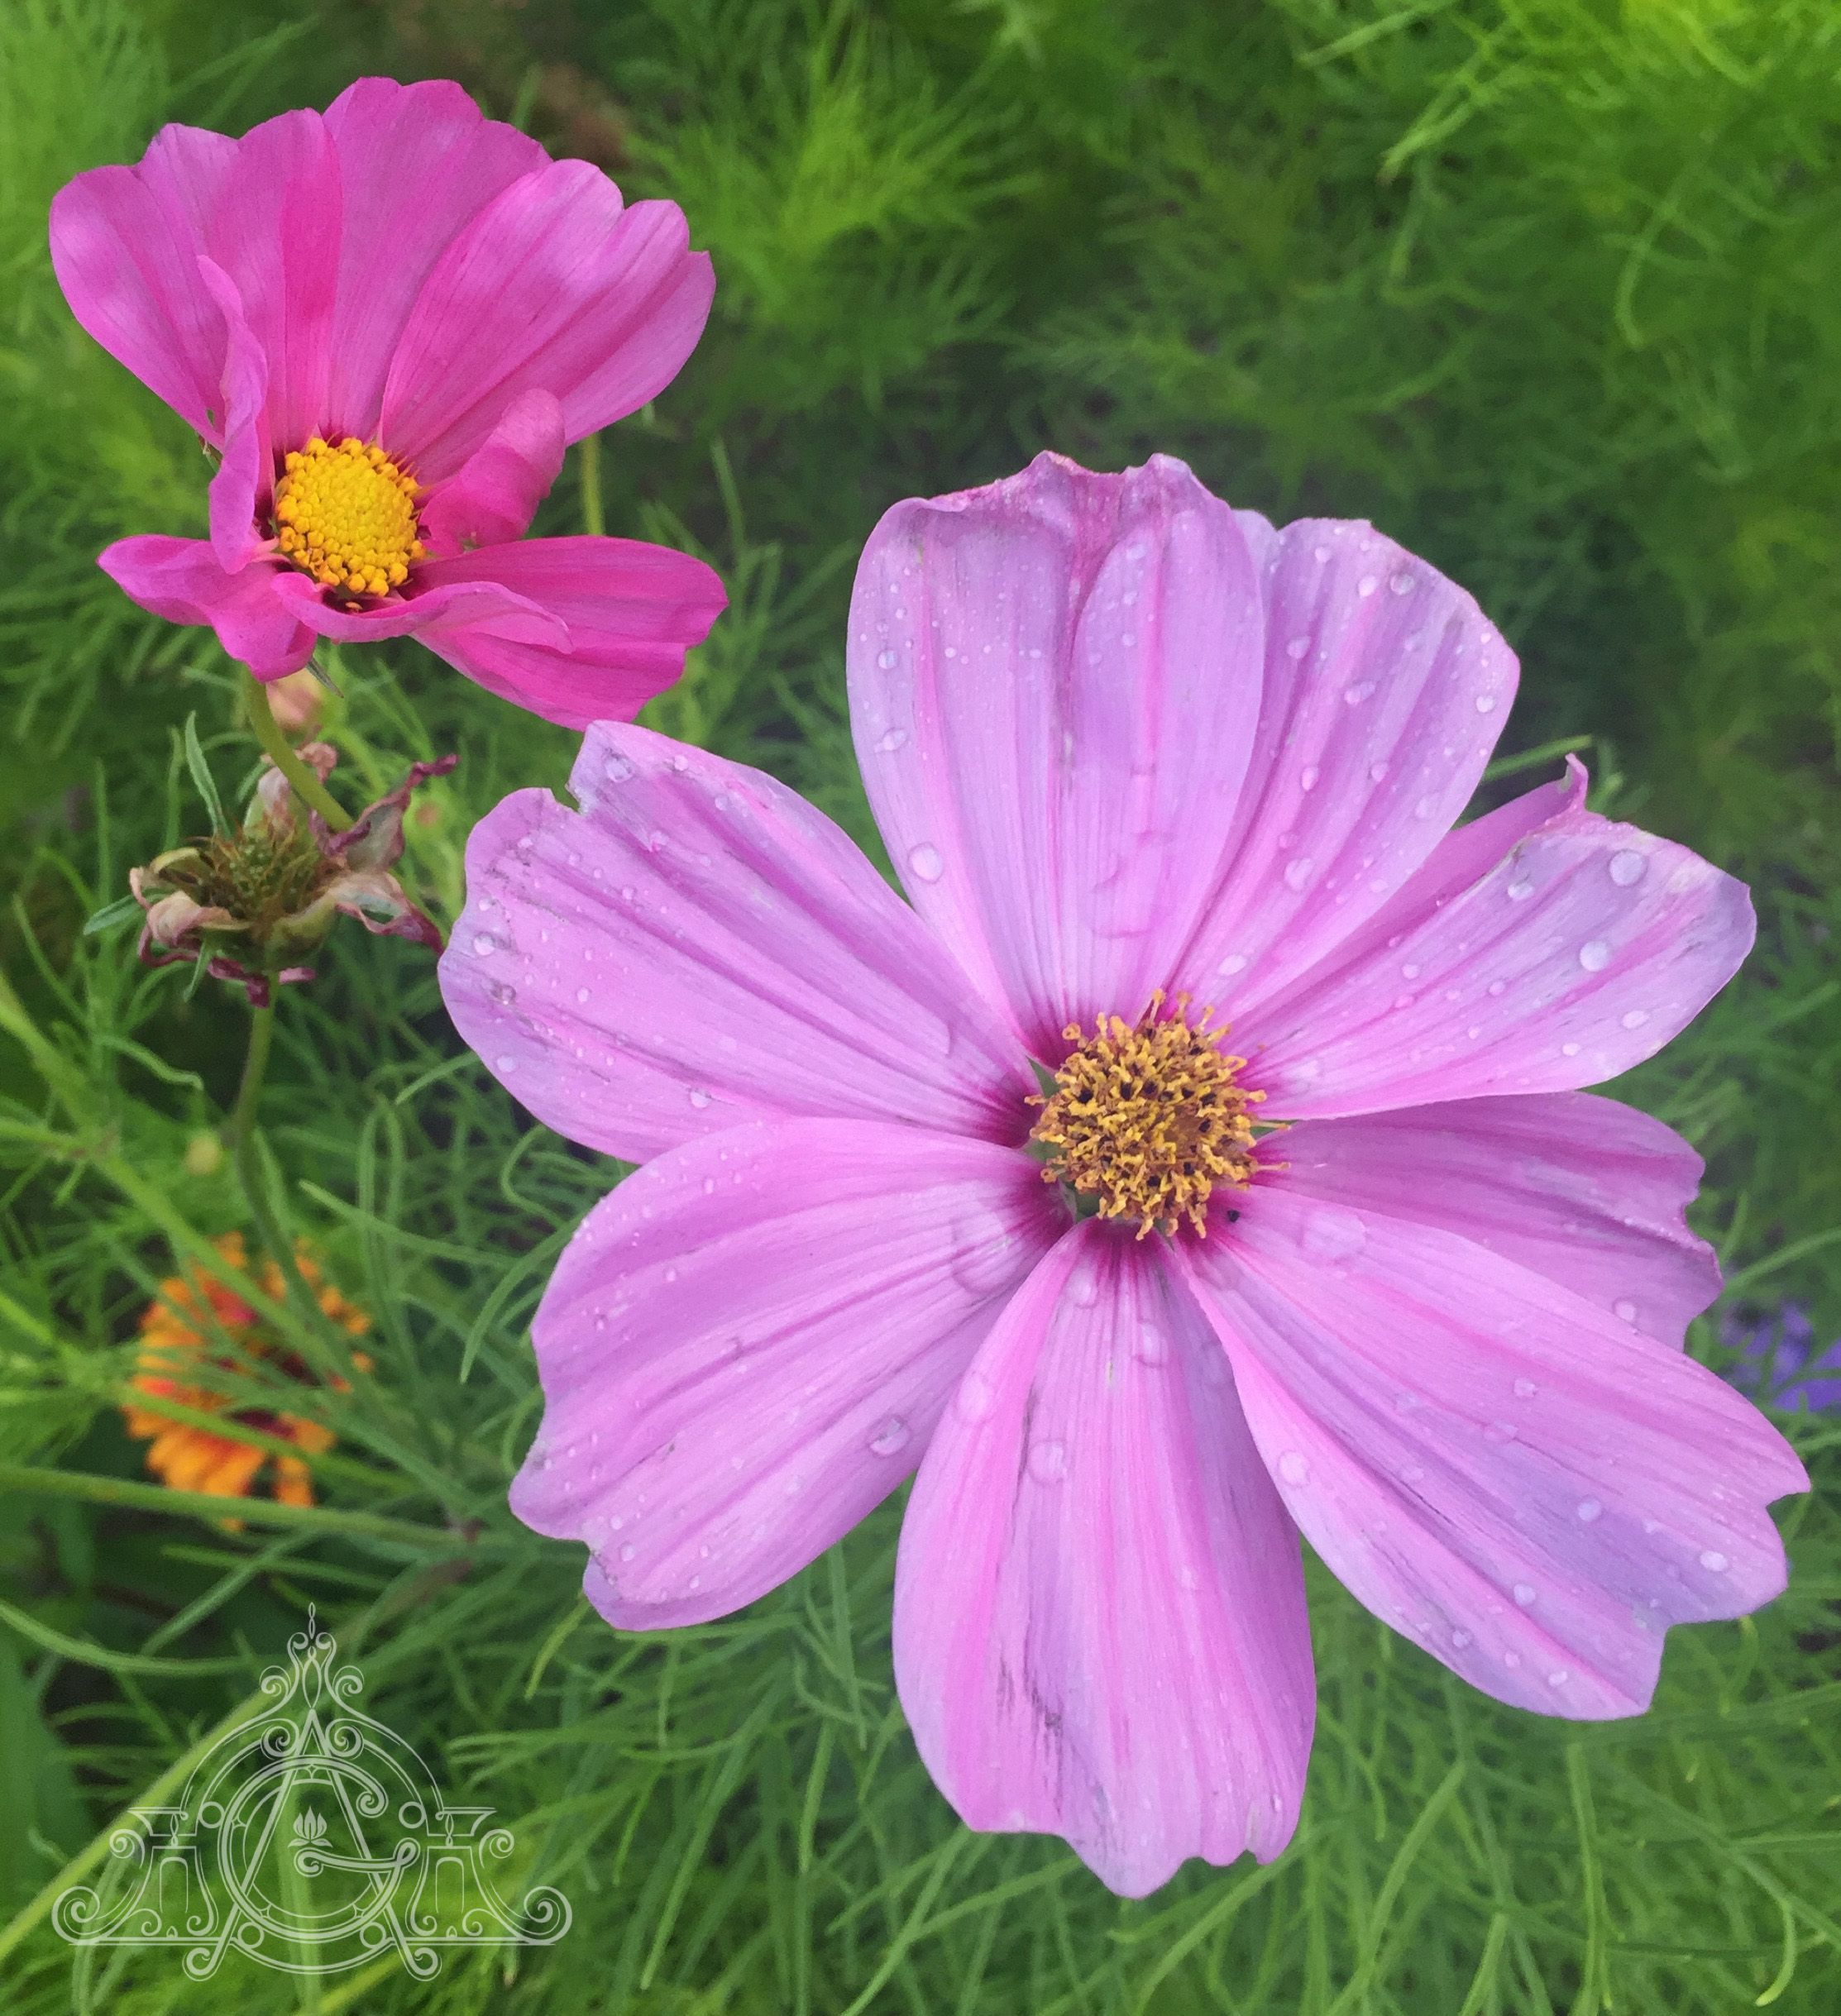 We Take This Simple Flower For Granted But It Is A Wonder Really Cosmos Will Grow With Just A Sprinkling Of Seeds And Seed Catalogs Organic Gardening Plants